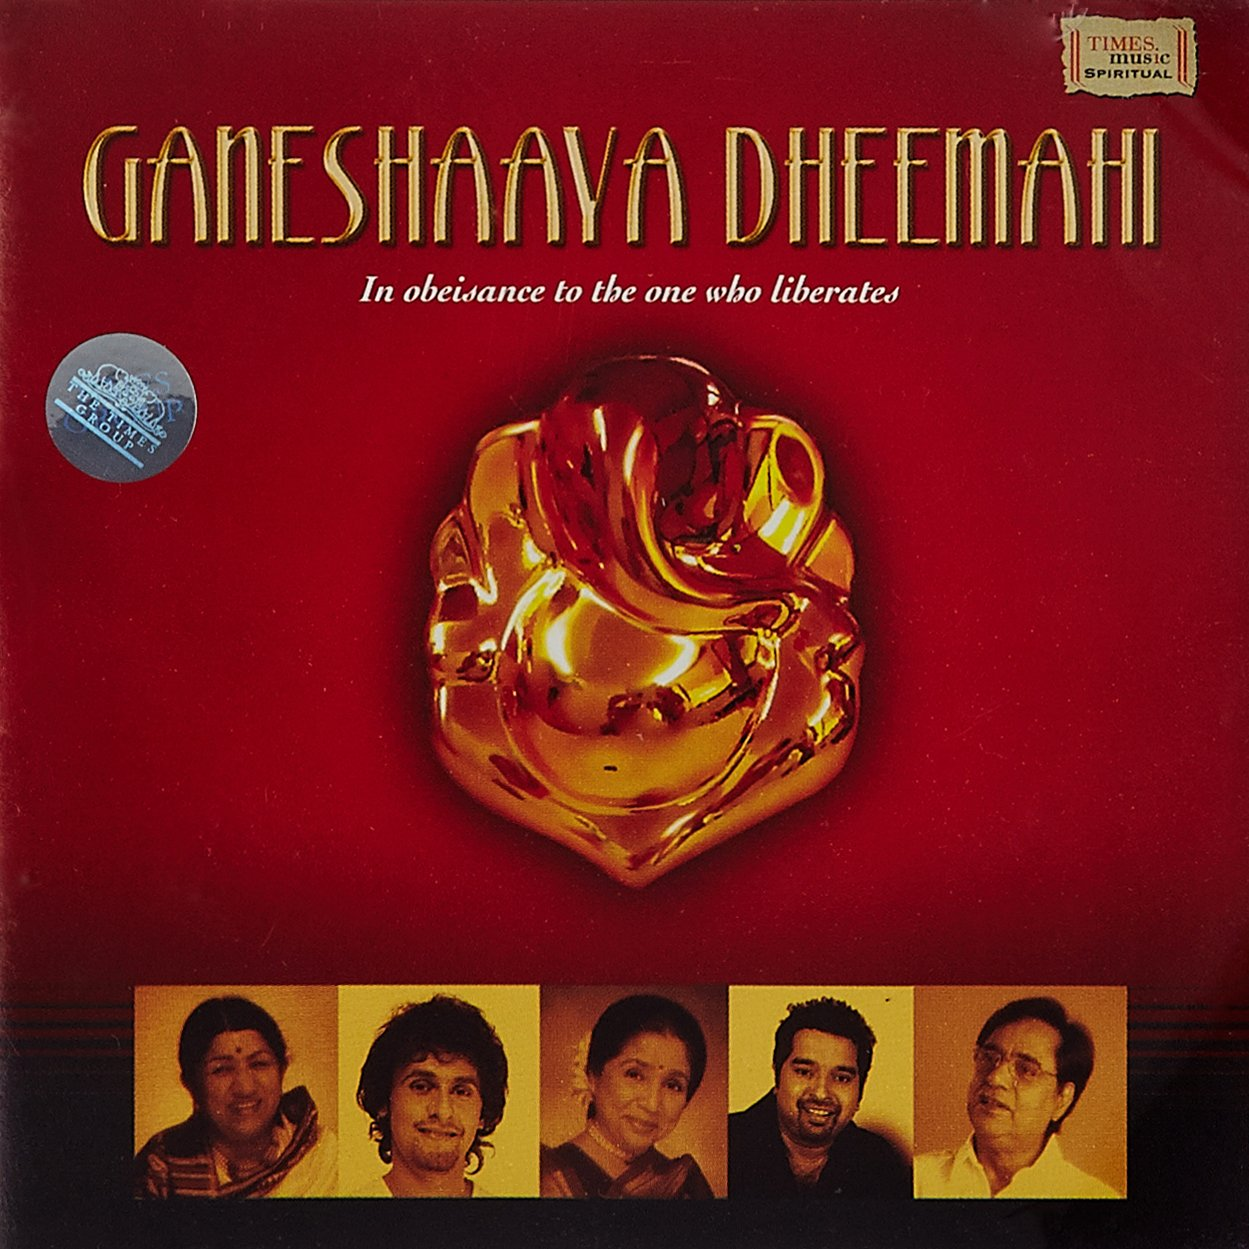 Ganeshaaya Dheemahi Limited time for free shipping Cd Ultra-Cheap Deals Indian Devotional Religious Prayer